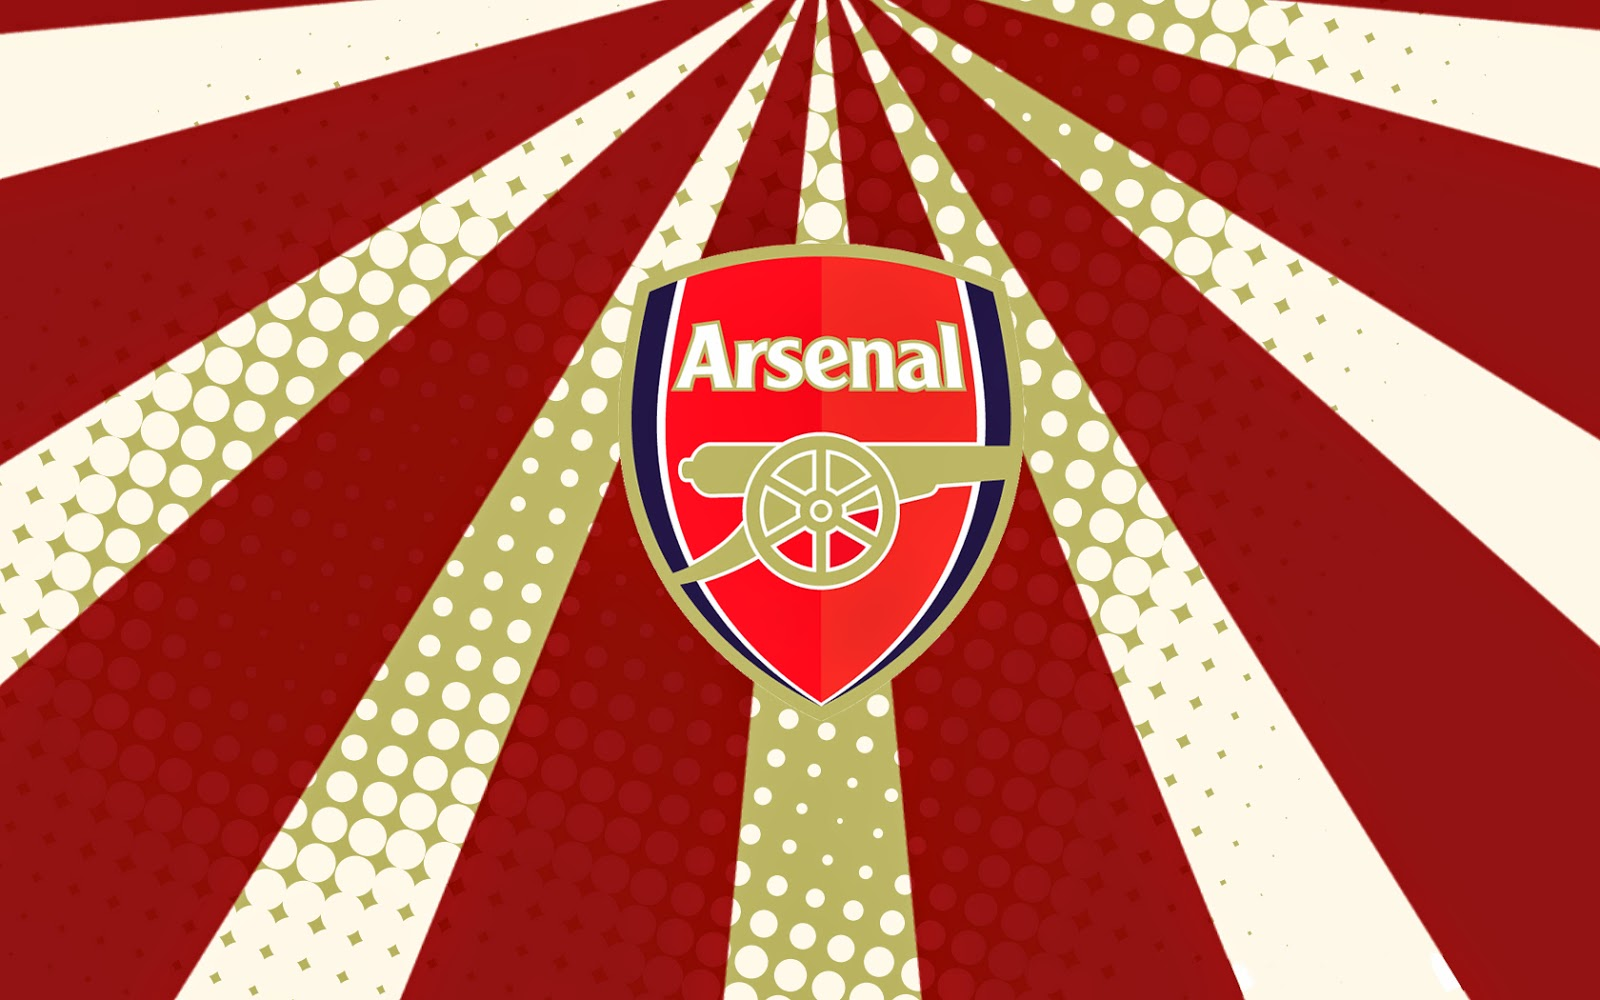 Iphone wallpaper tumblr football -  Arsenal Football Club Wallpaper